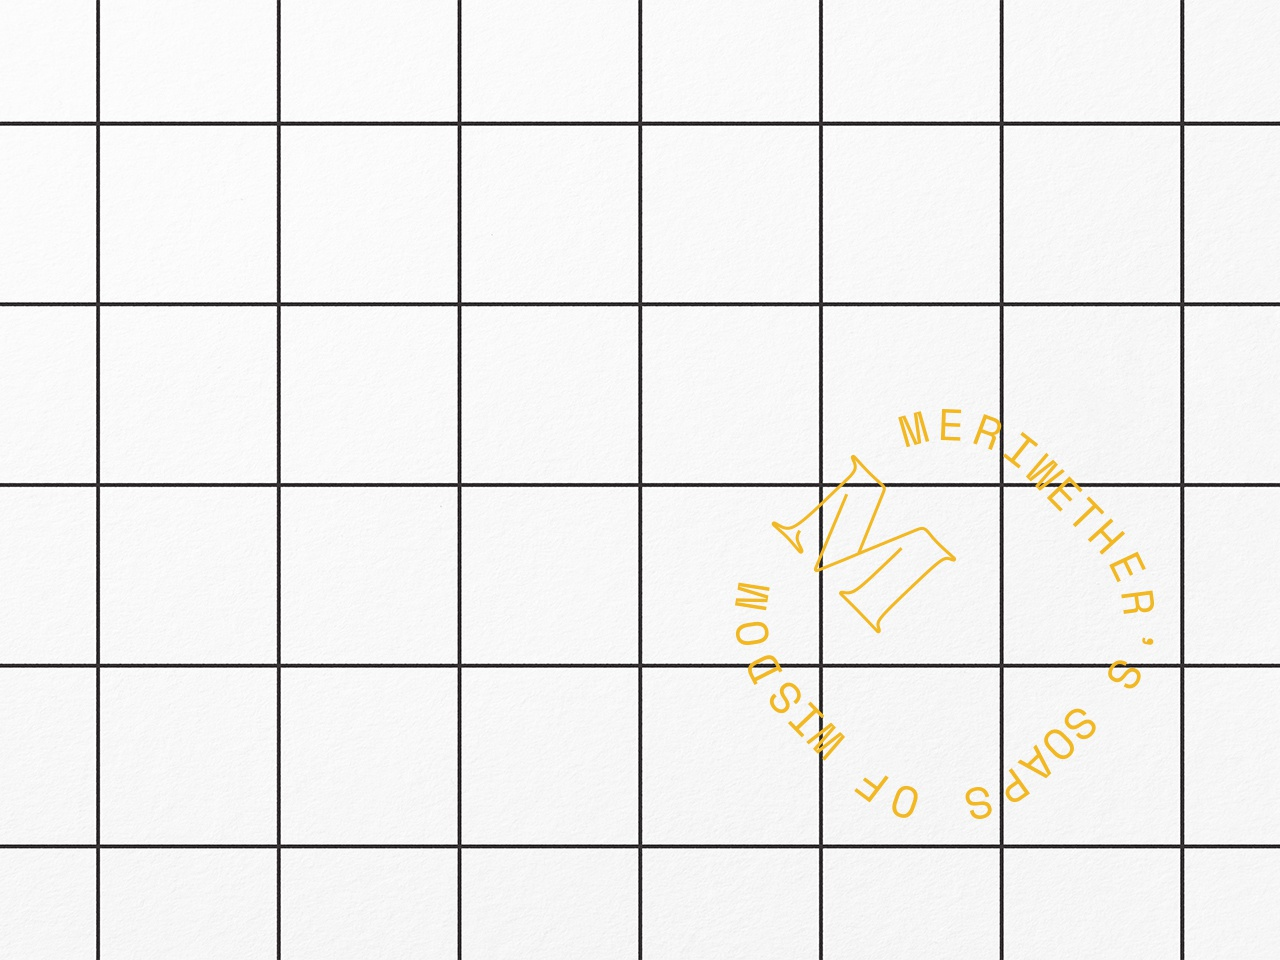 Meriwether's Insignia stencil meriwether logo bubbly wisdom mustard ochre grid design tile bathroom stamp insignia soap element brand